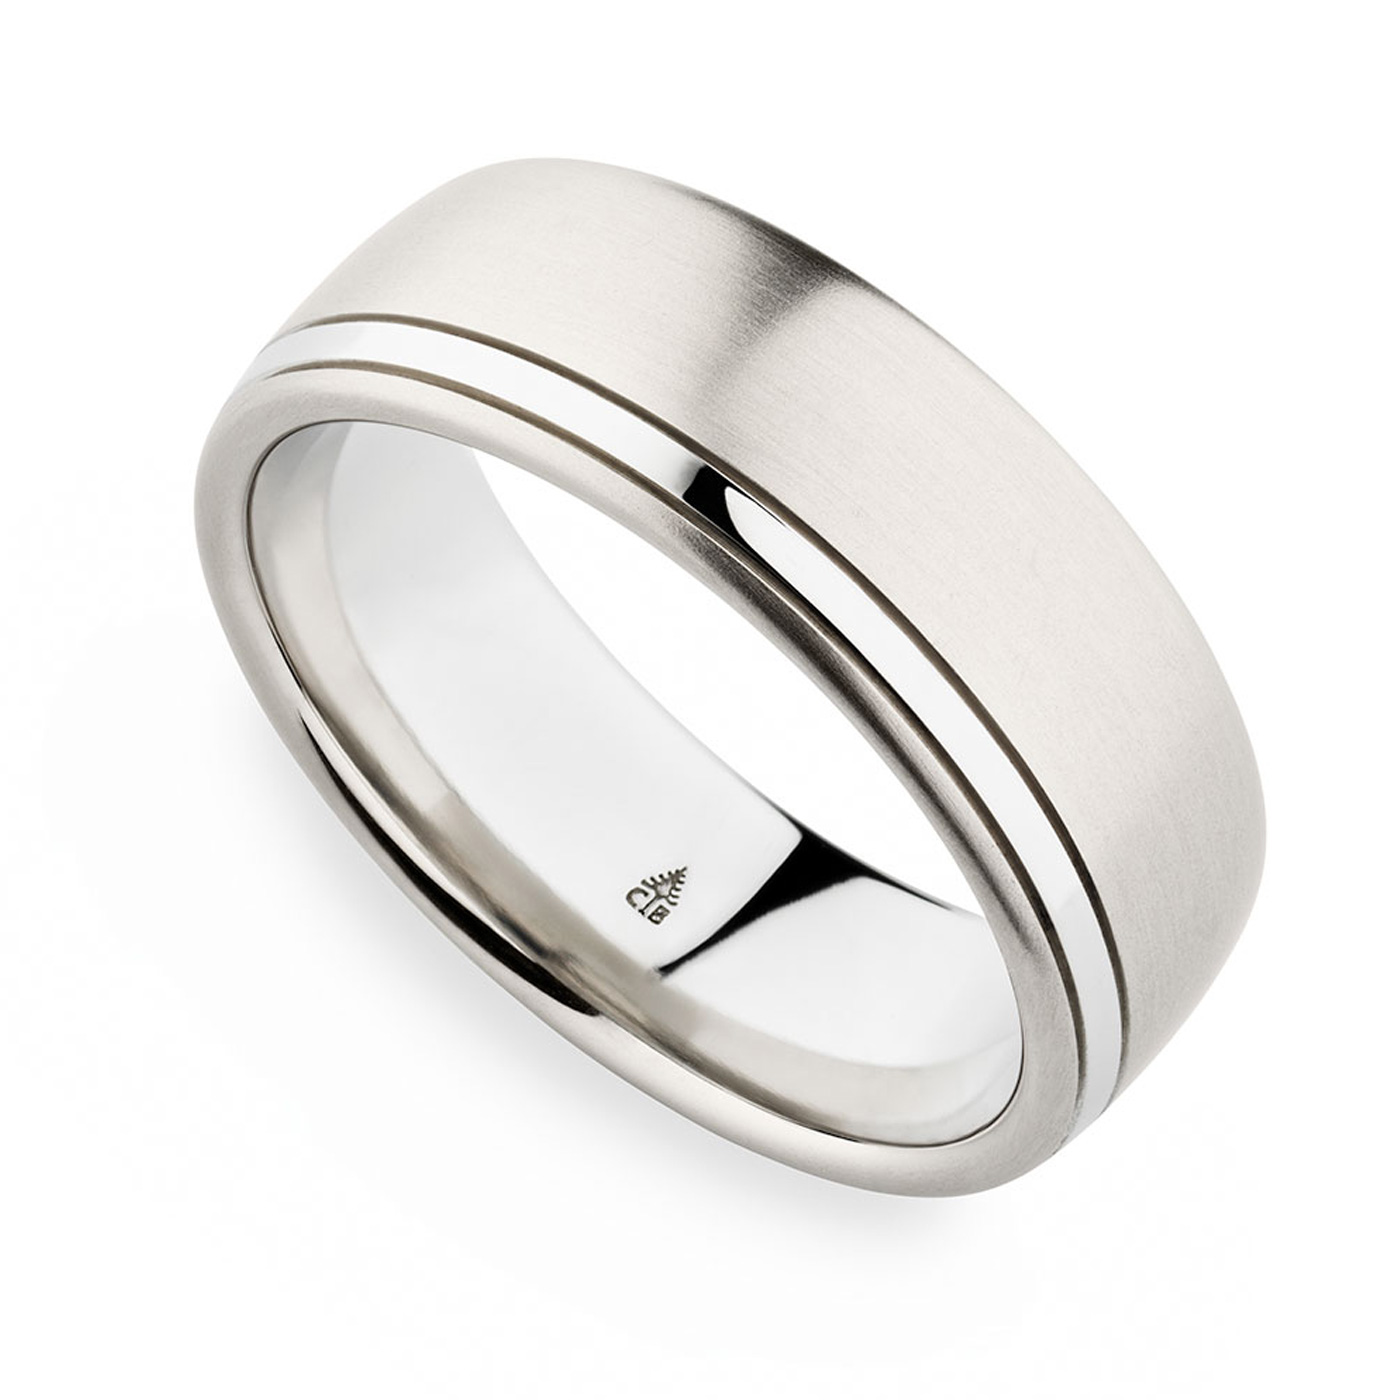 274309 christian bauer platinum wedding ring band tq for Christian bauer wedding rings